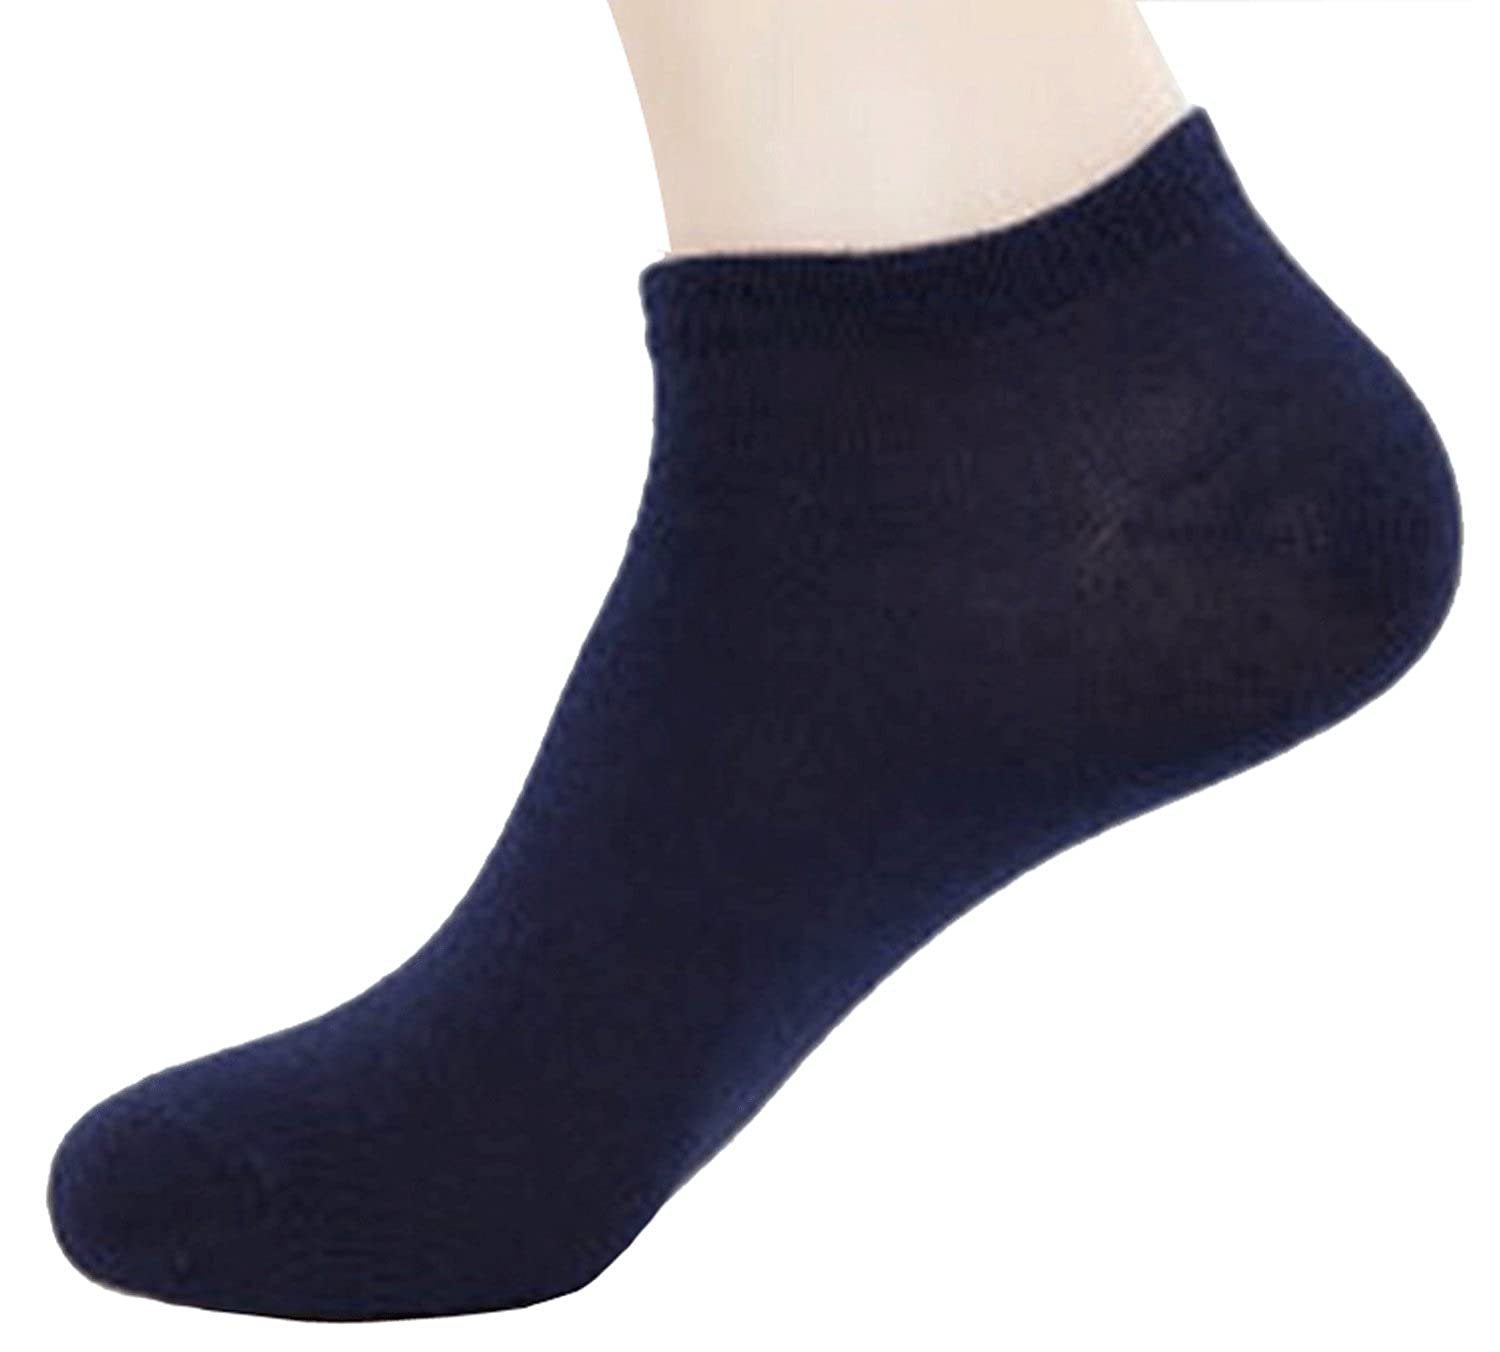 Dopeme 5 Pack of Men's Walking Ankle Crew Sock Athletic Socks DM008